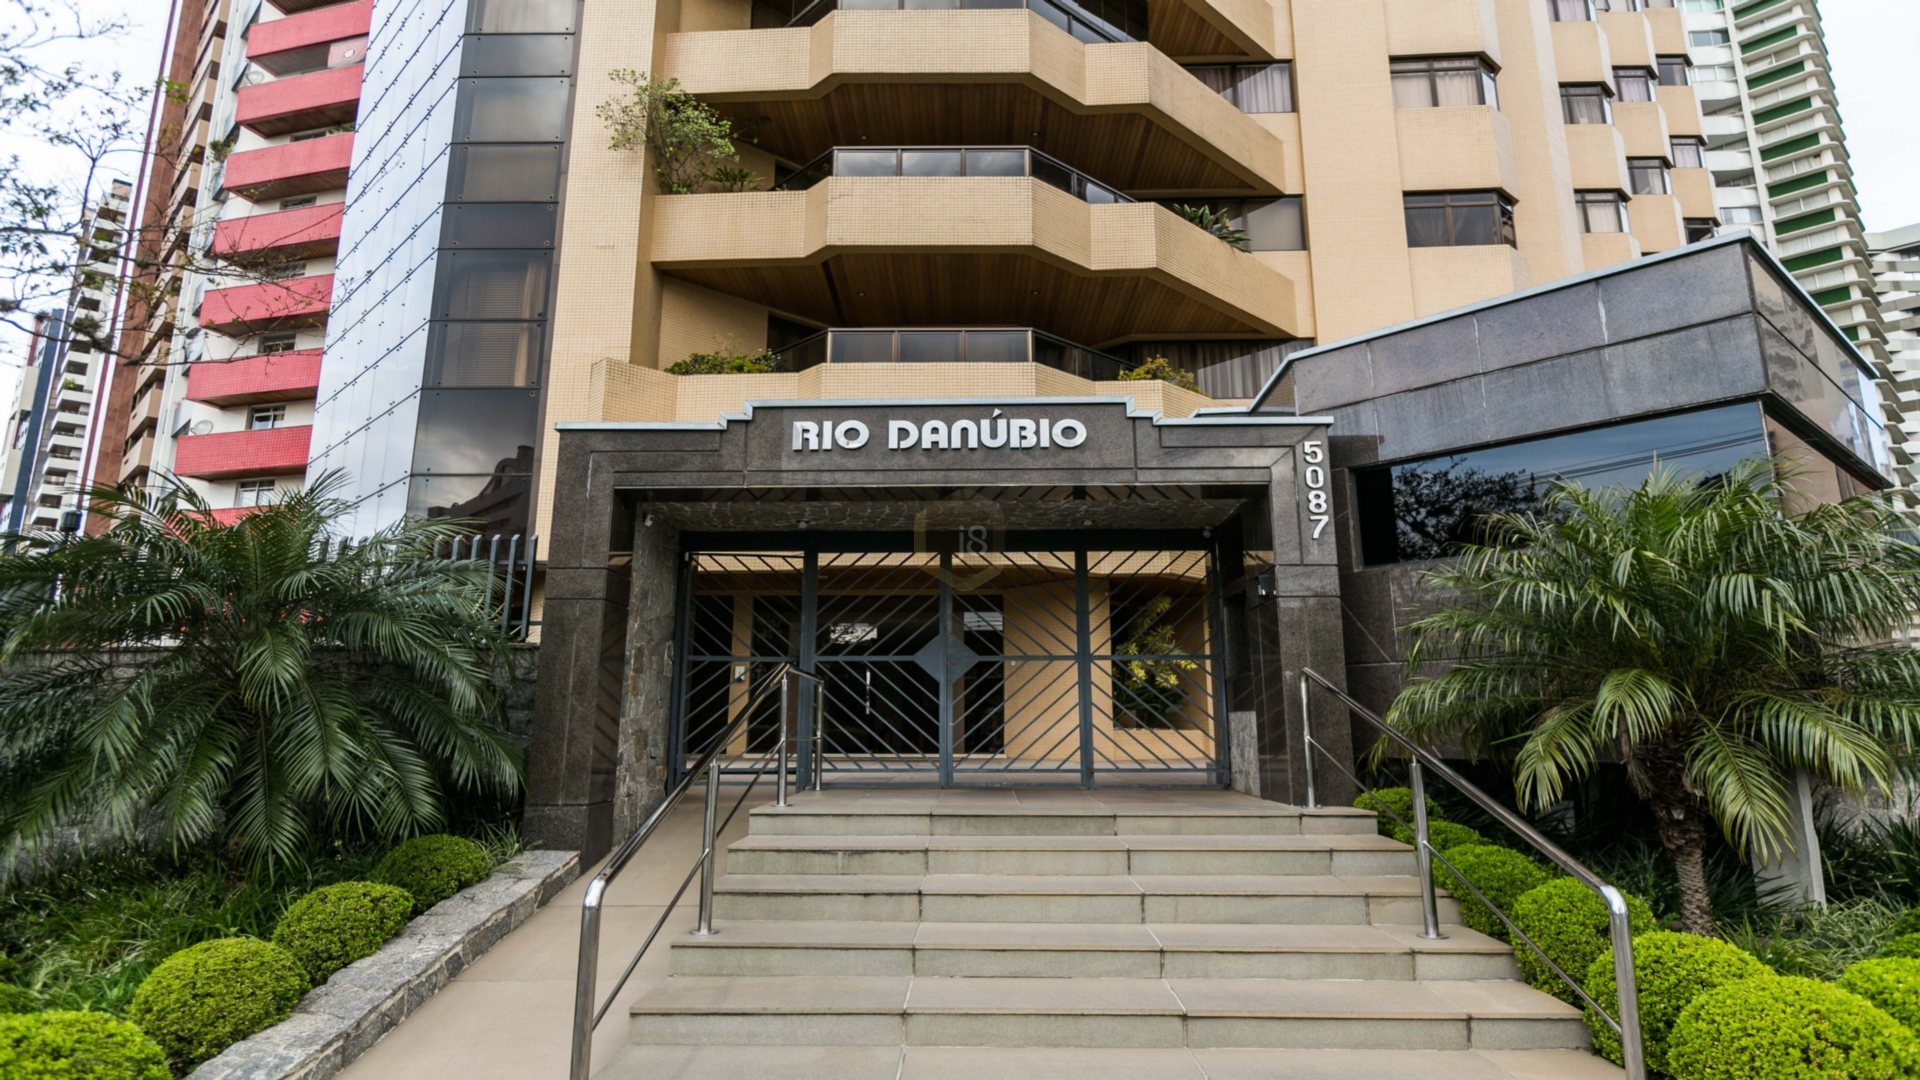 Foto de destaque Apartamento visconde de guarapuava